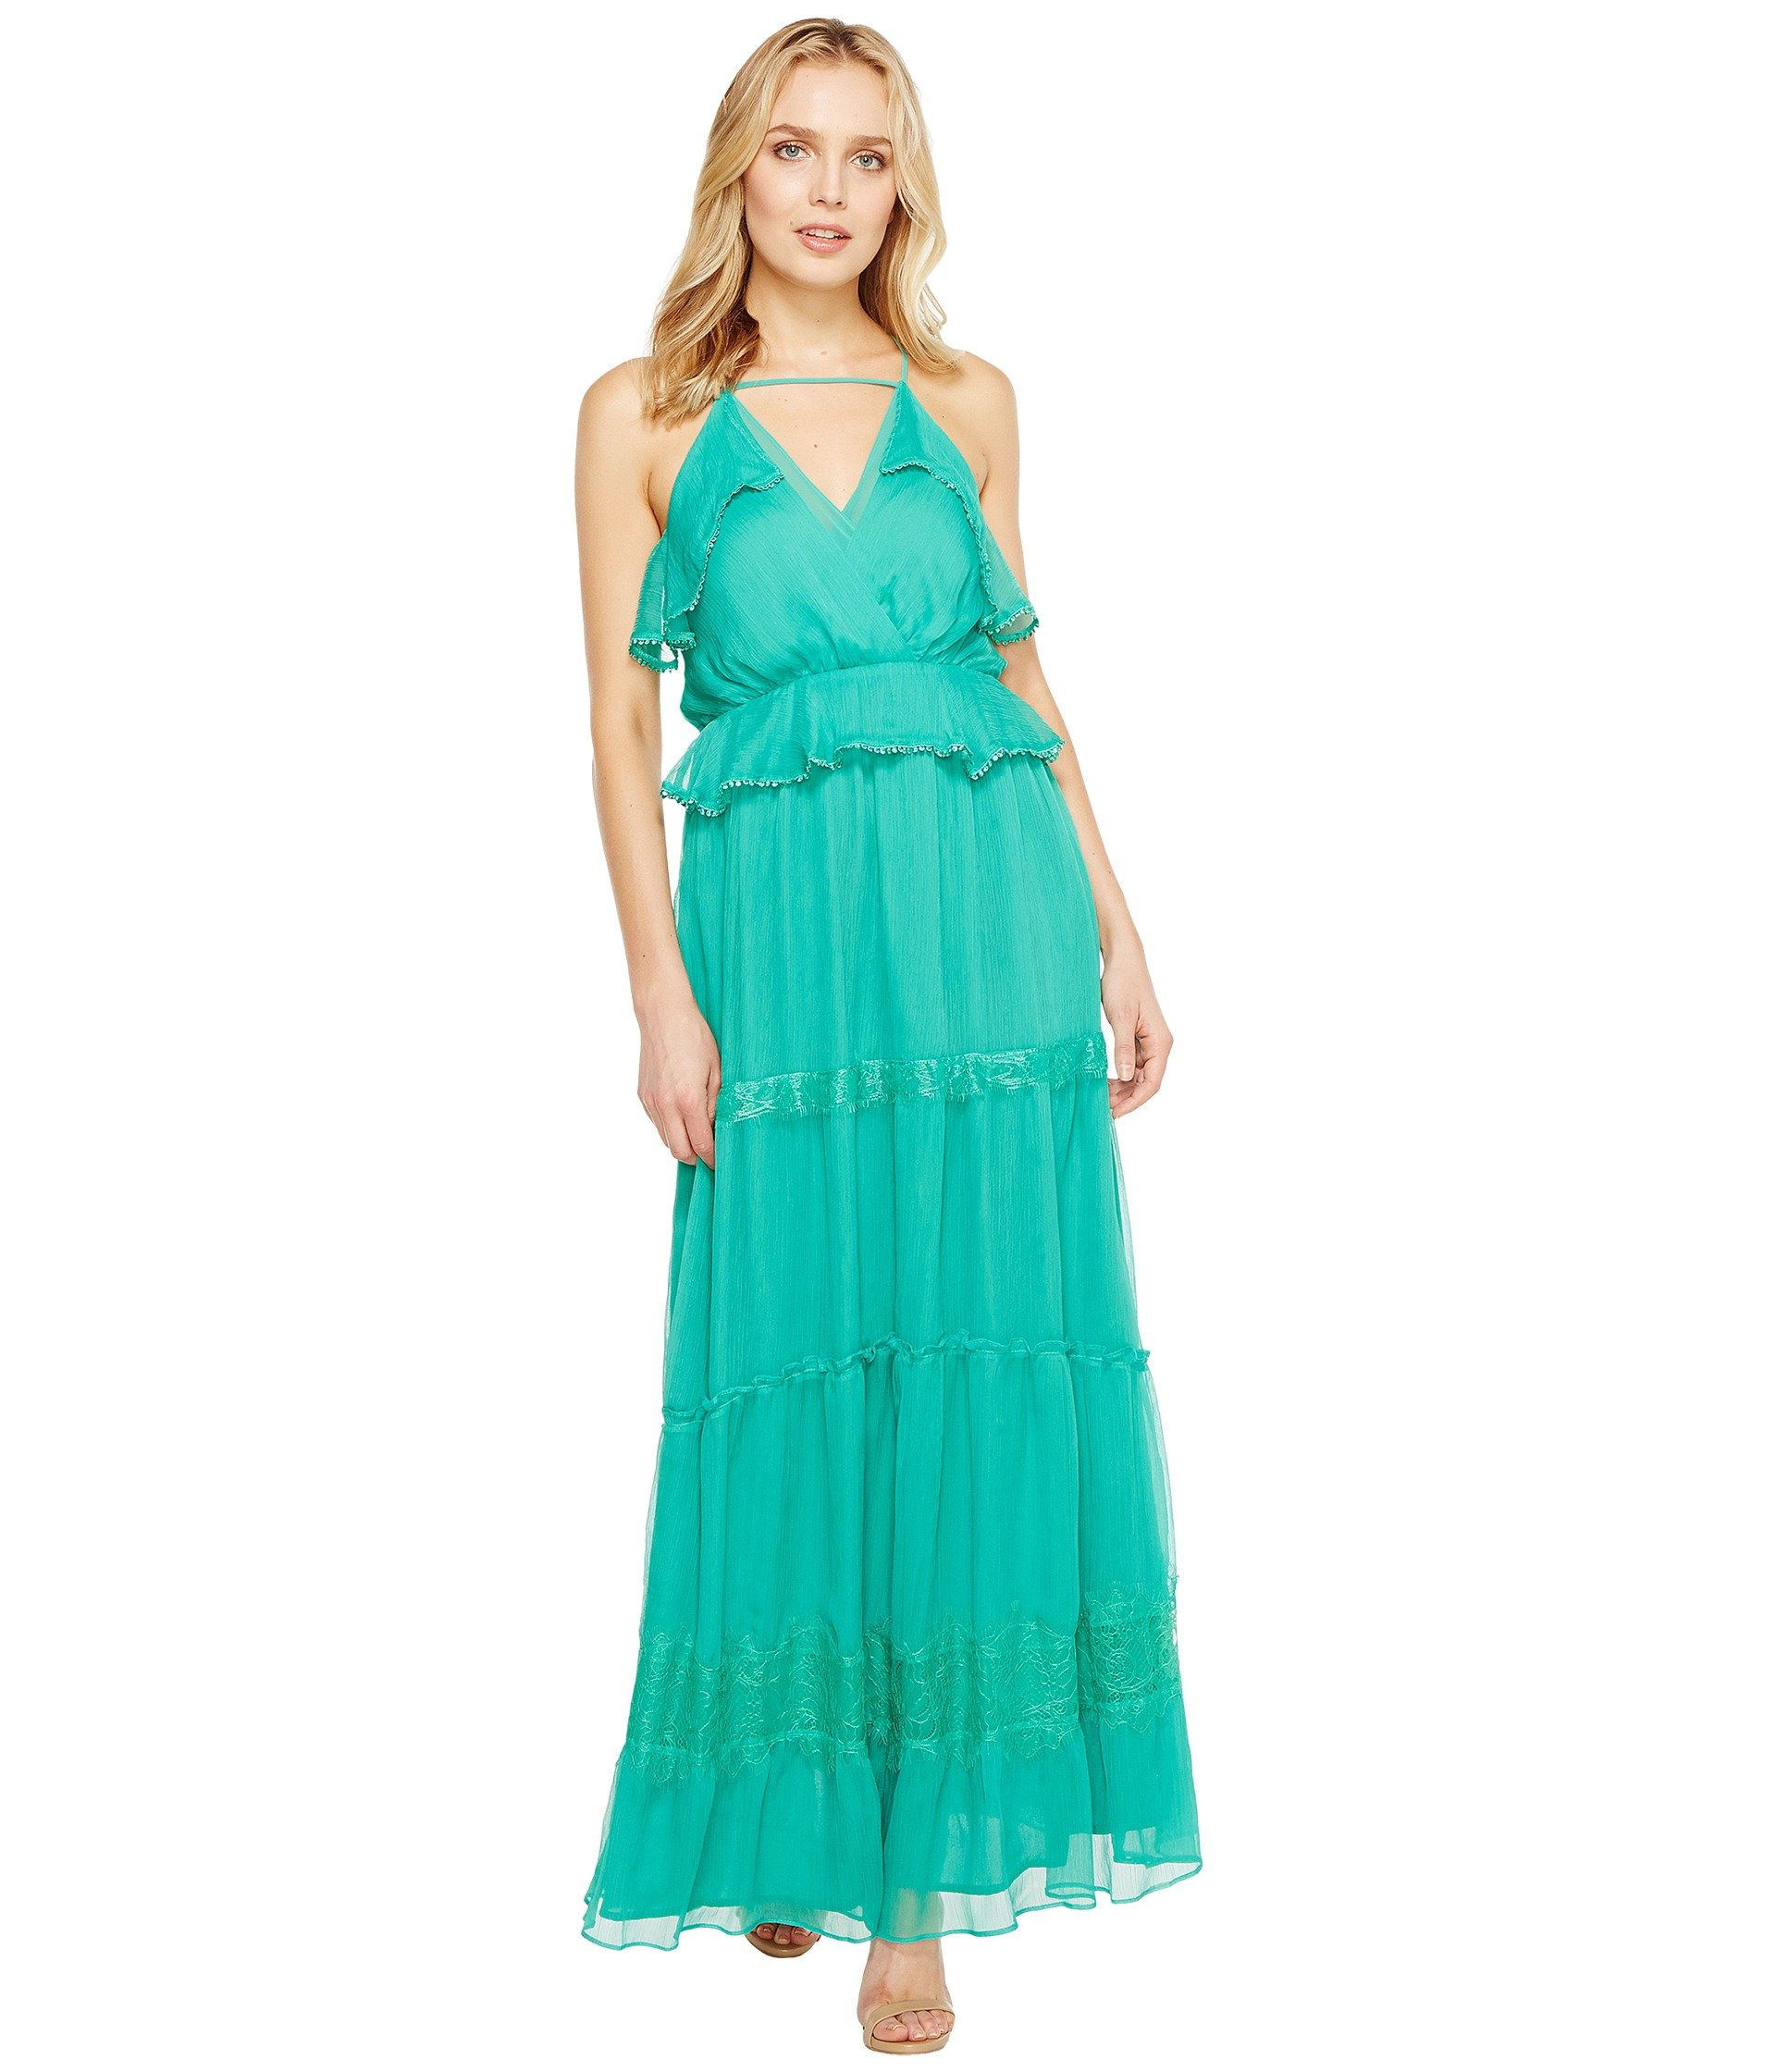 Frill Maxi Dress - Emerald Adelyn Rae